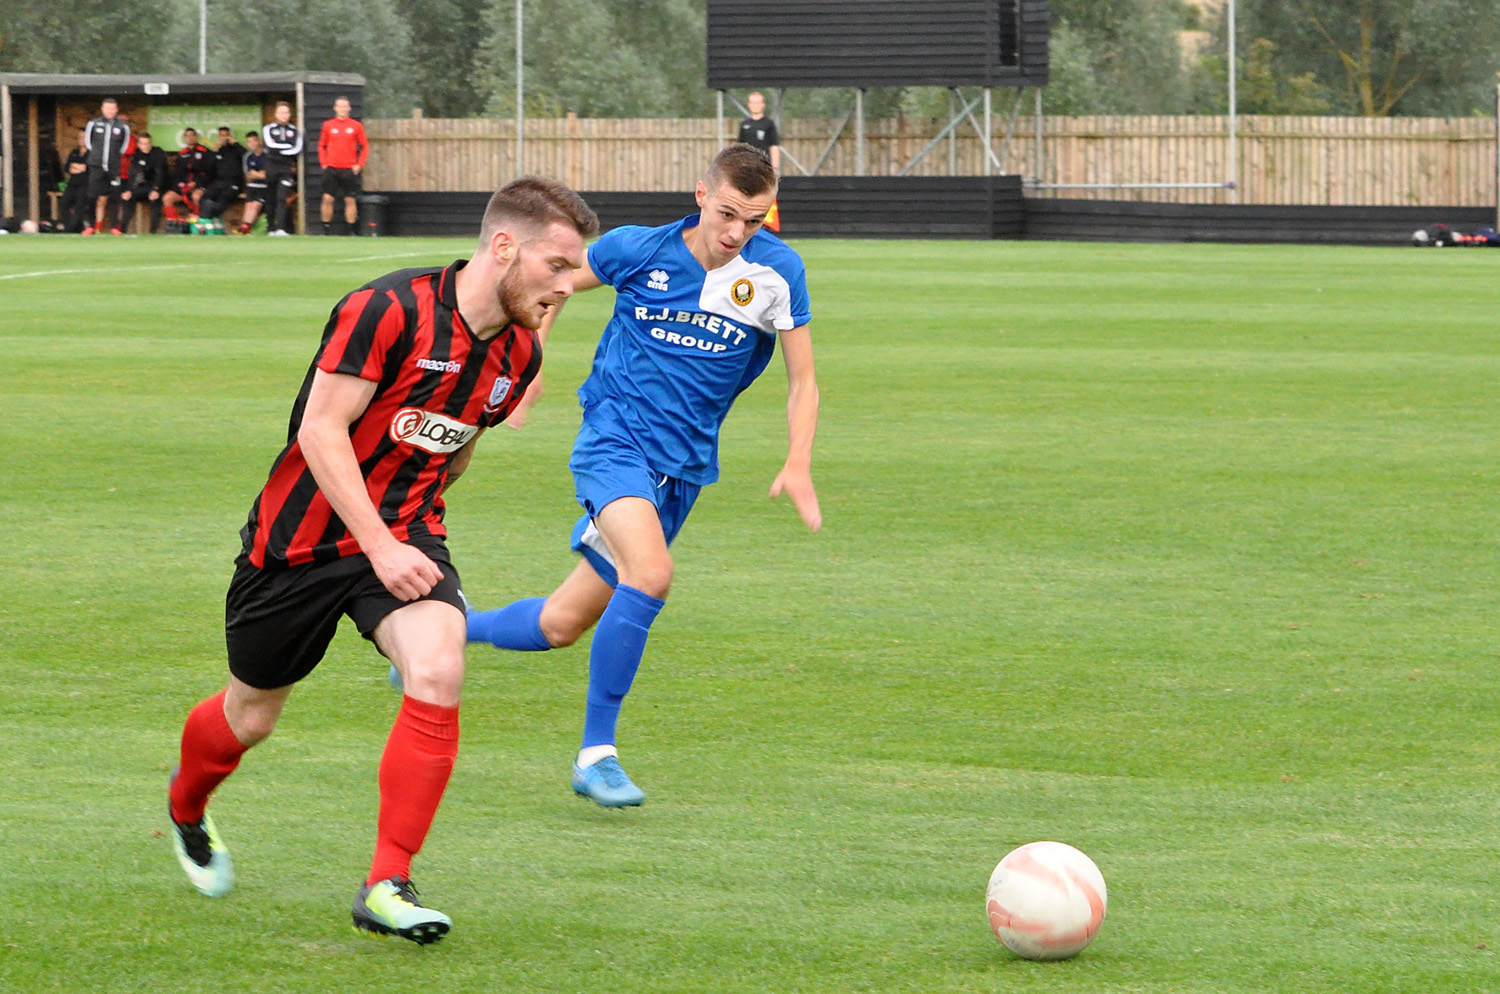 coggeshall-5-1-stanway-rovers-01-08-17-10